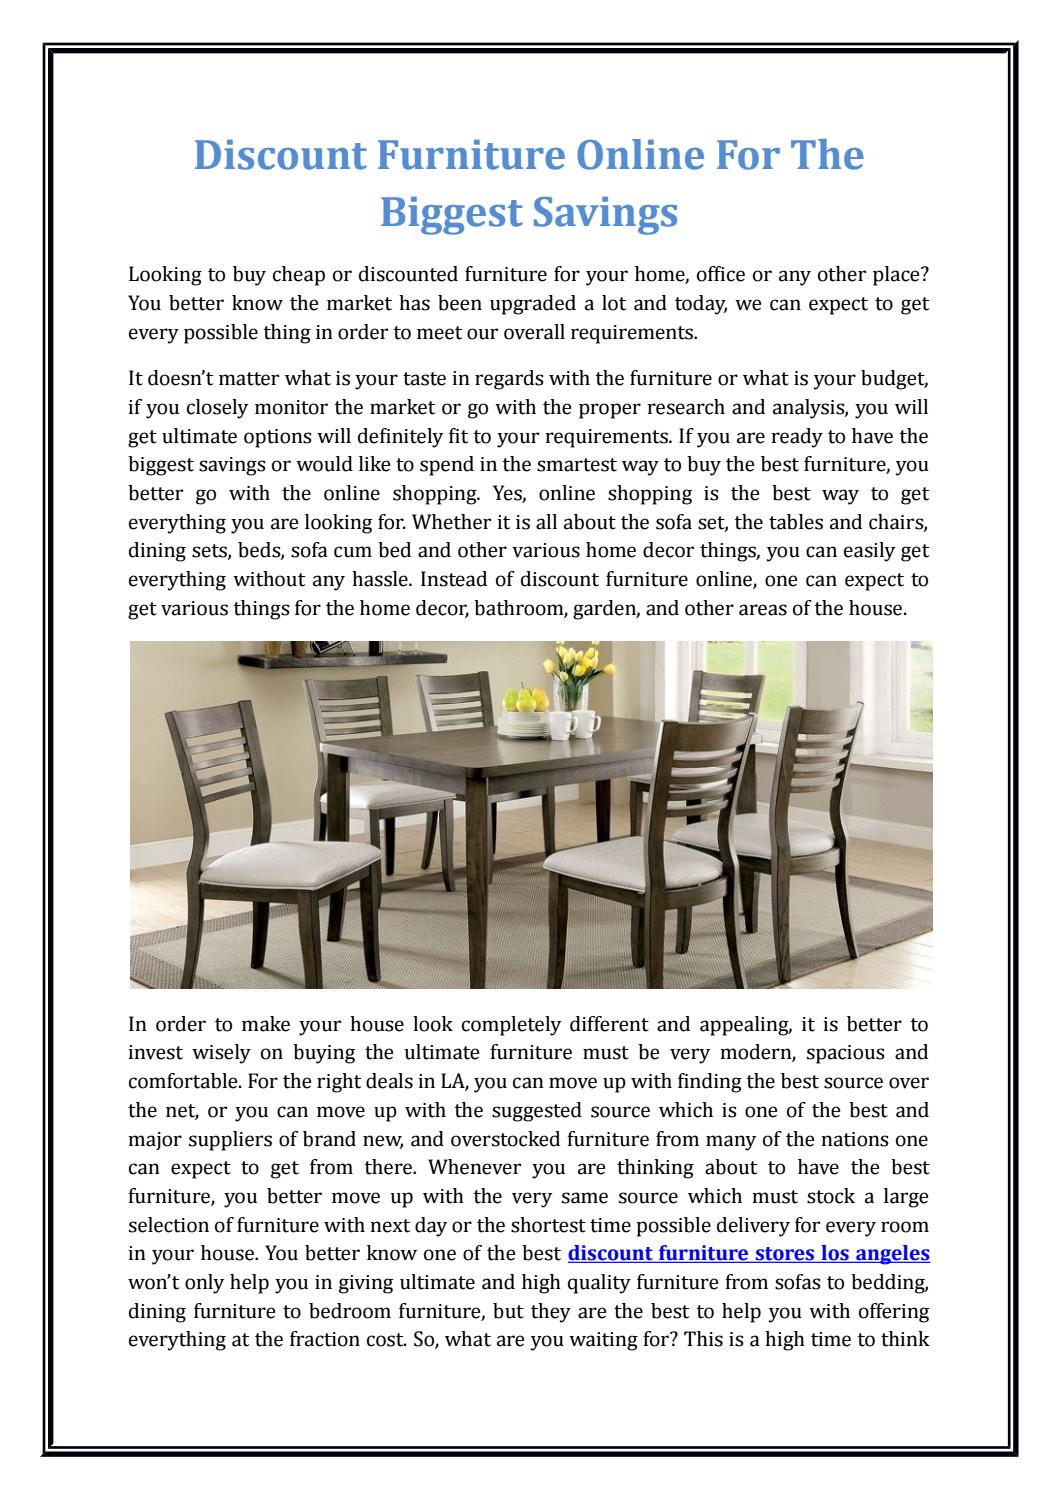 Discount furniture online for the biggest savings by chirag patel issuu